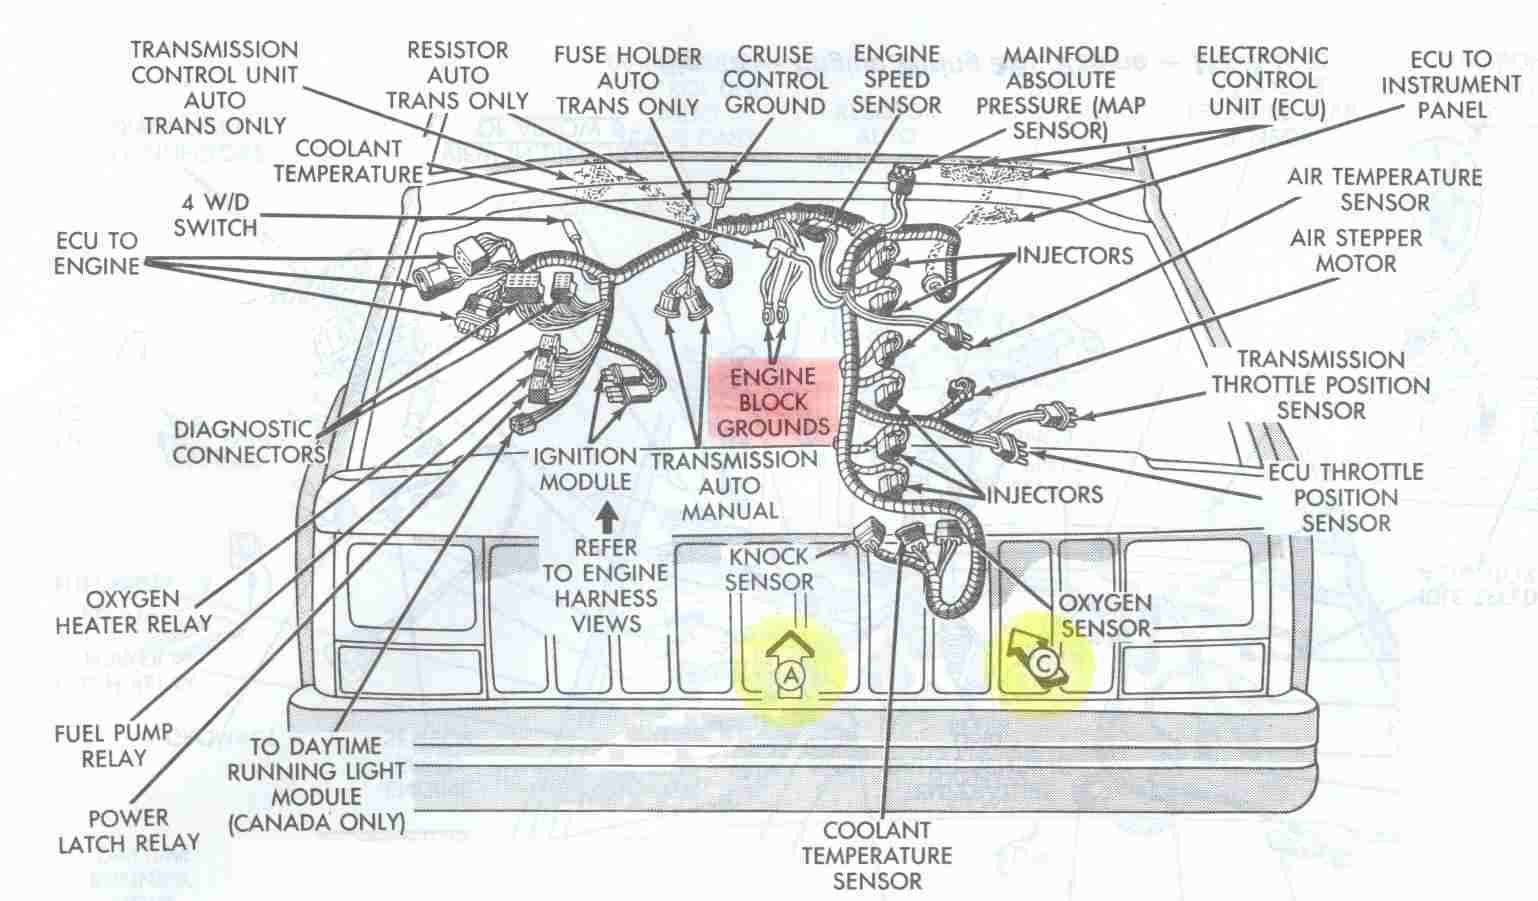 ab0134a7d9e021431187af597eb4aeca engine bay schematic showing major electrical ground points for 95 jeep grand cherokee wiring diagram at soozxer.org